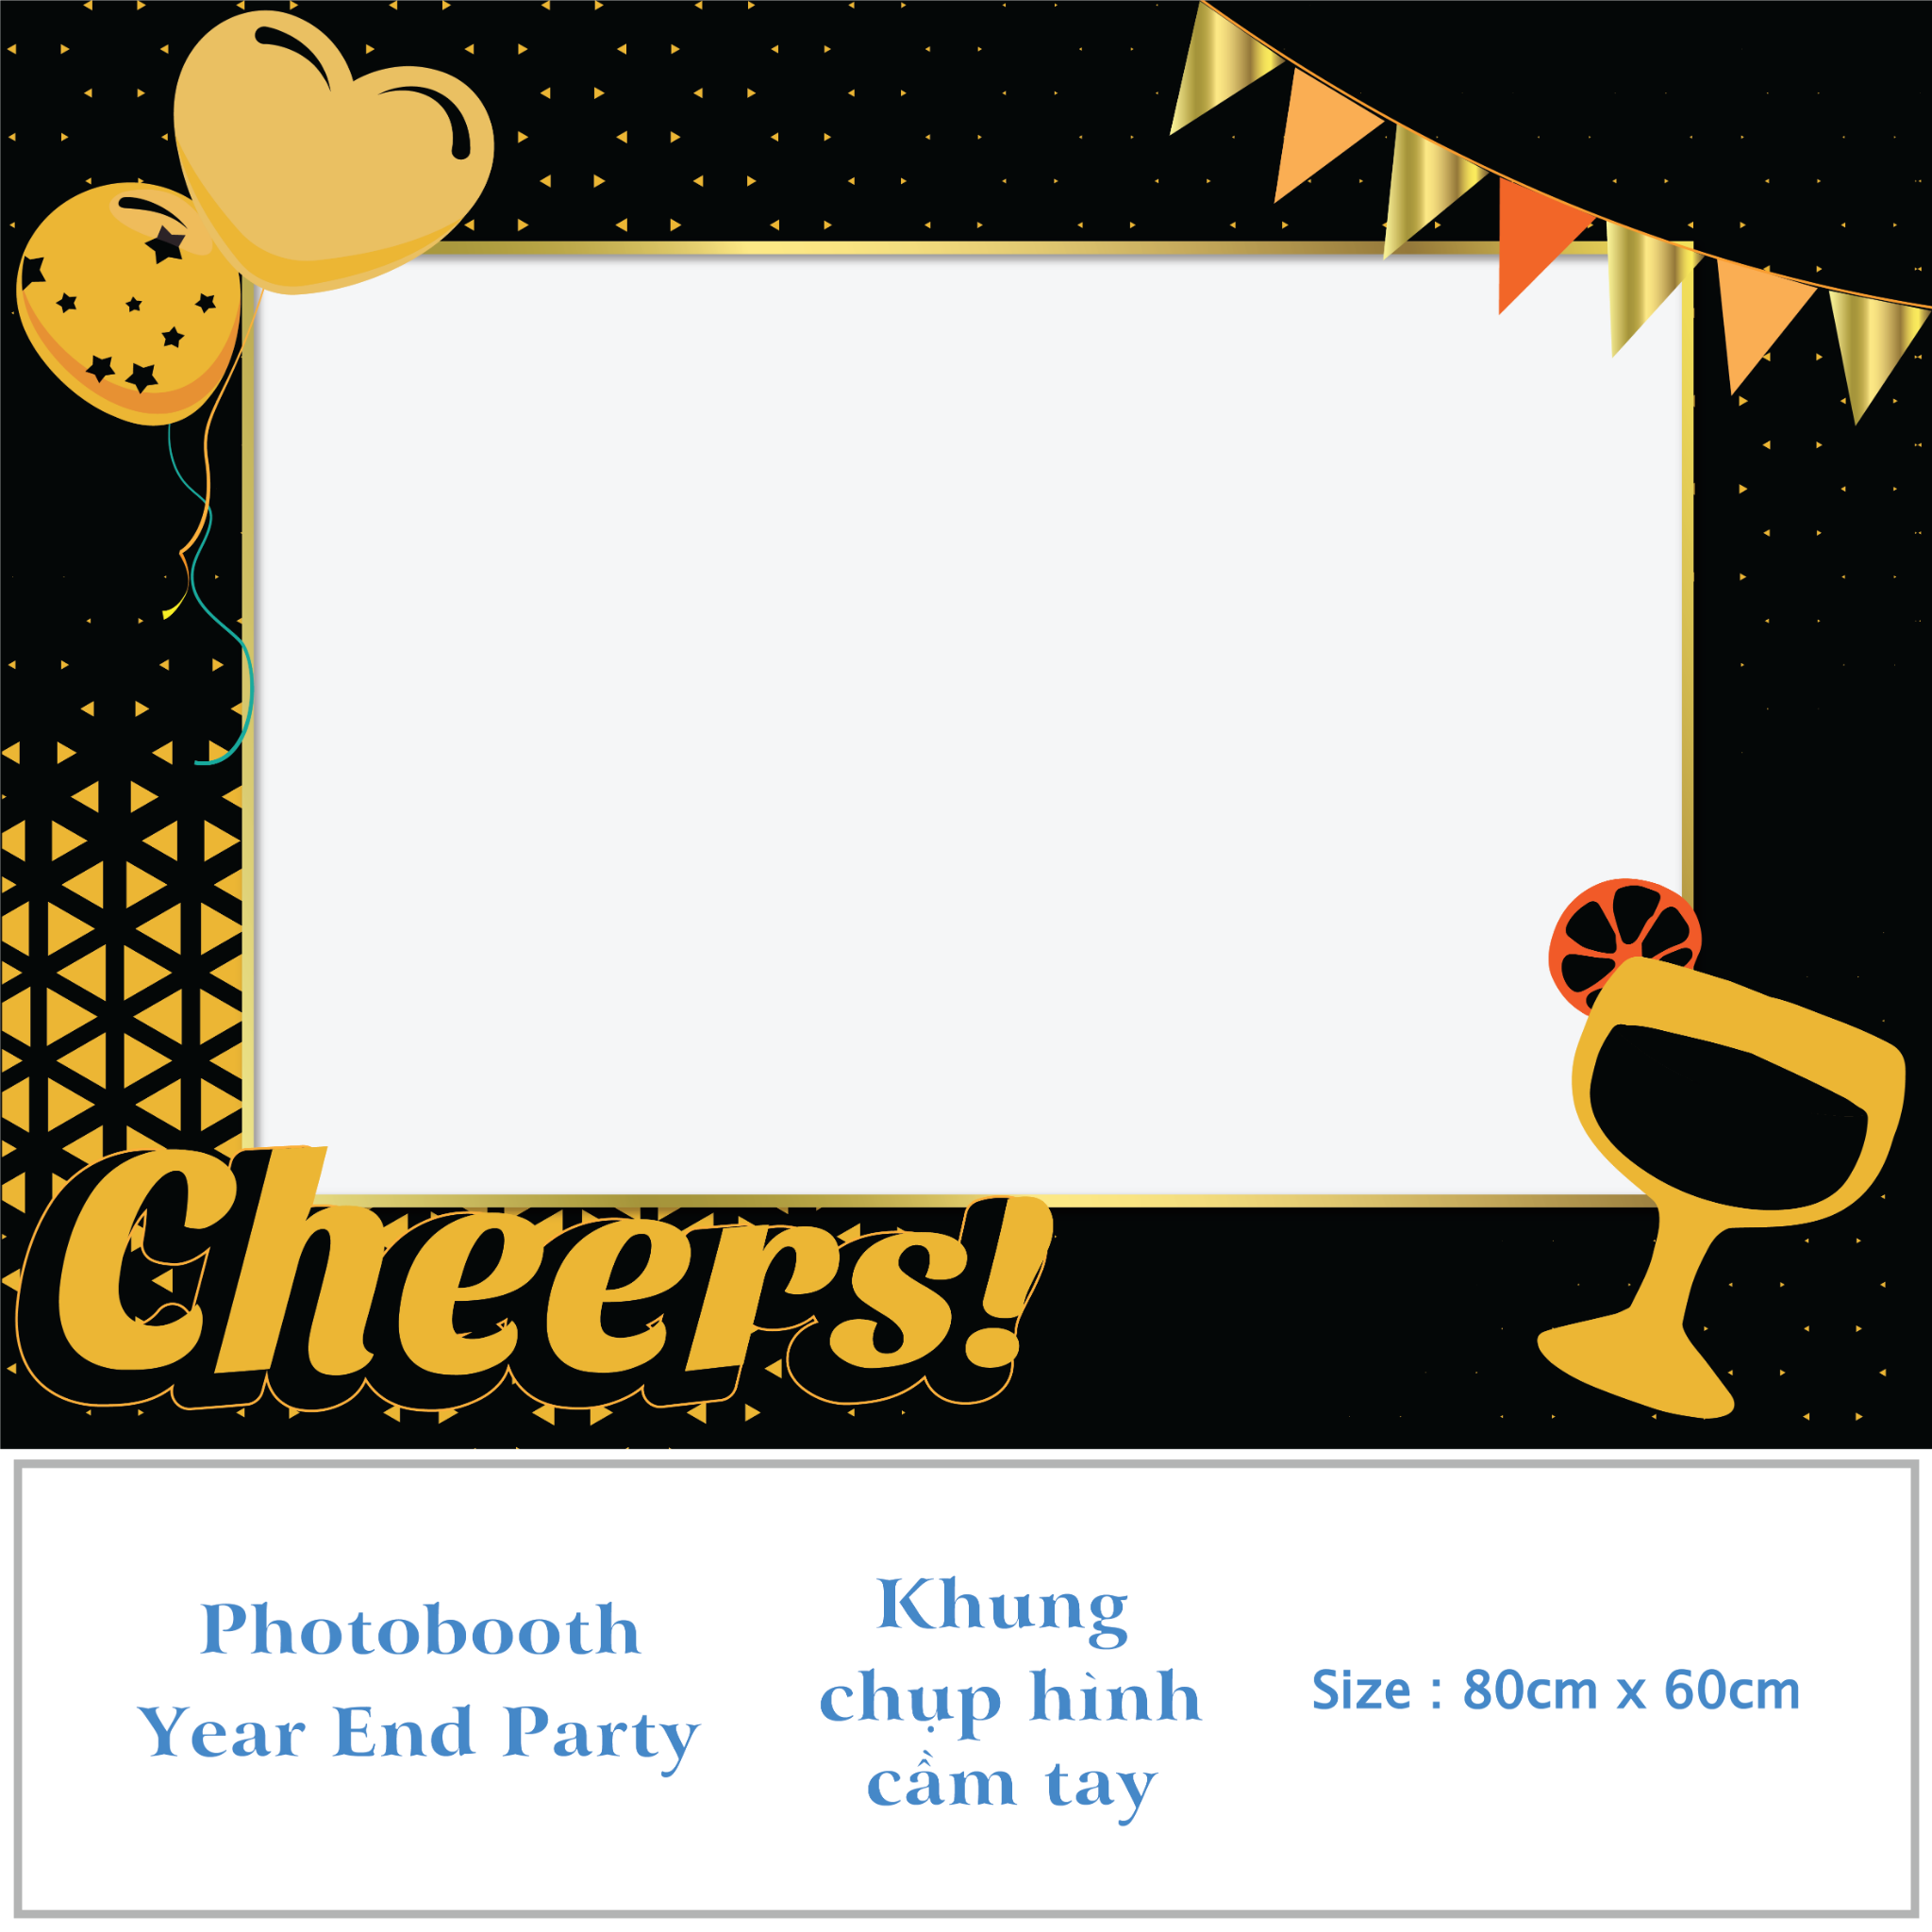 Photobooth - Year End Party - Mẫu 01